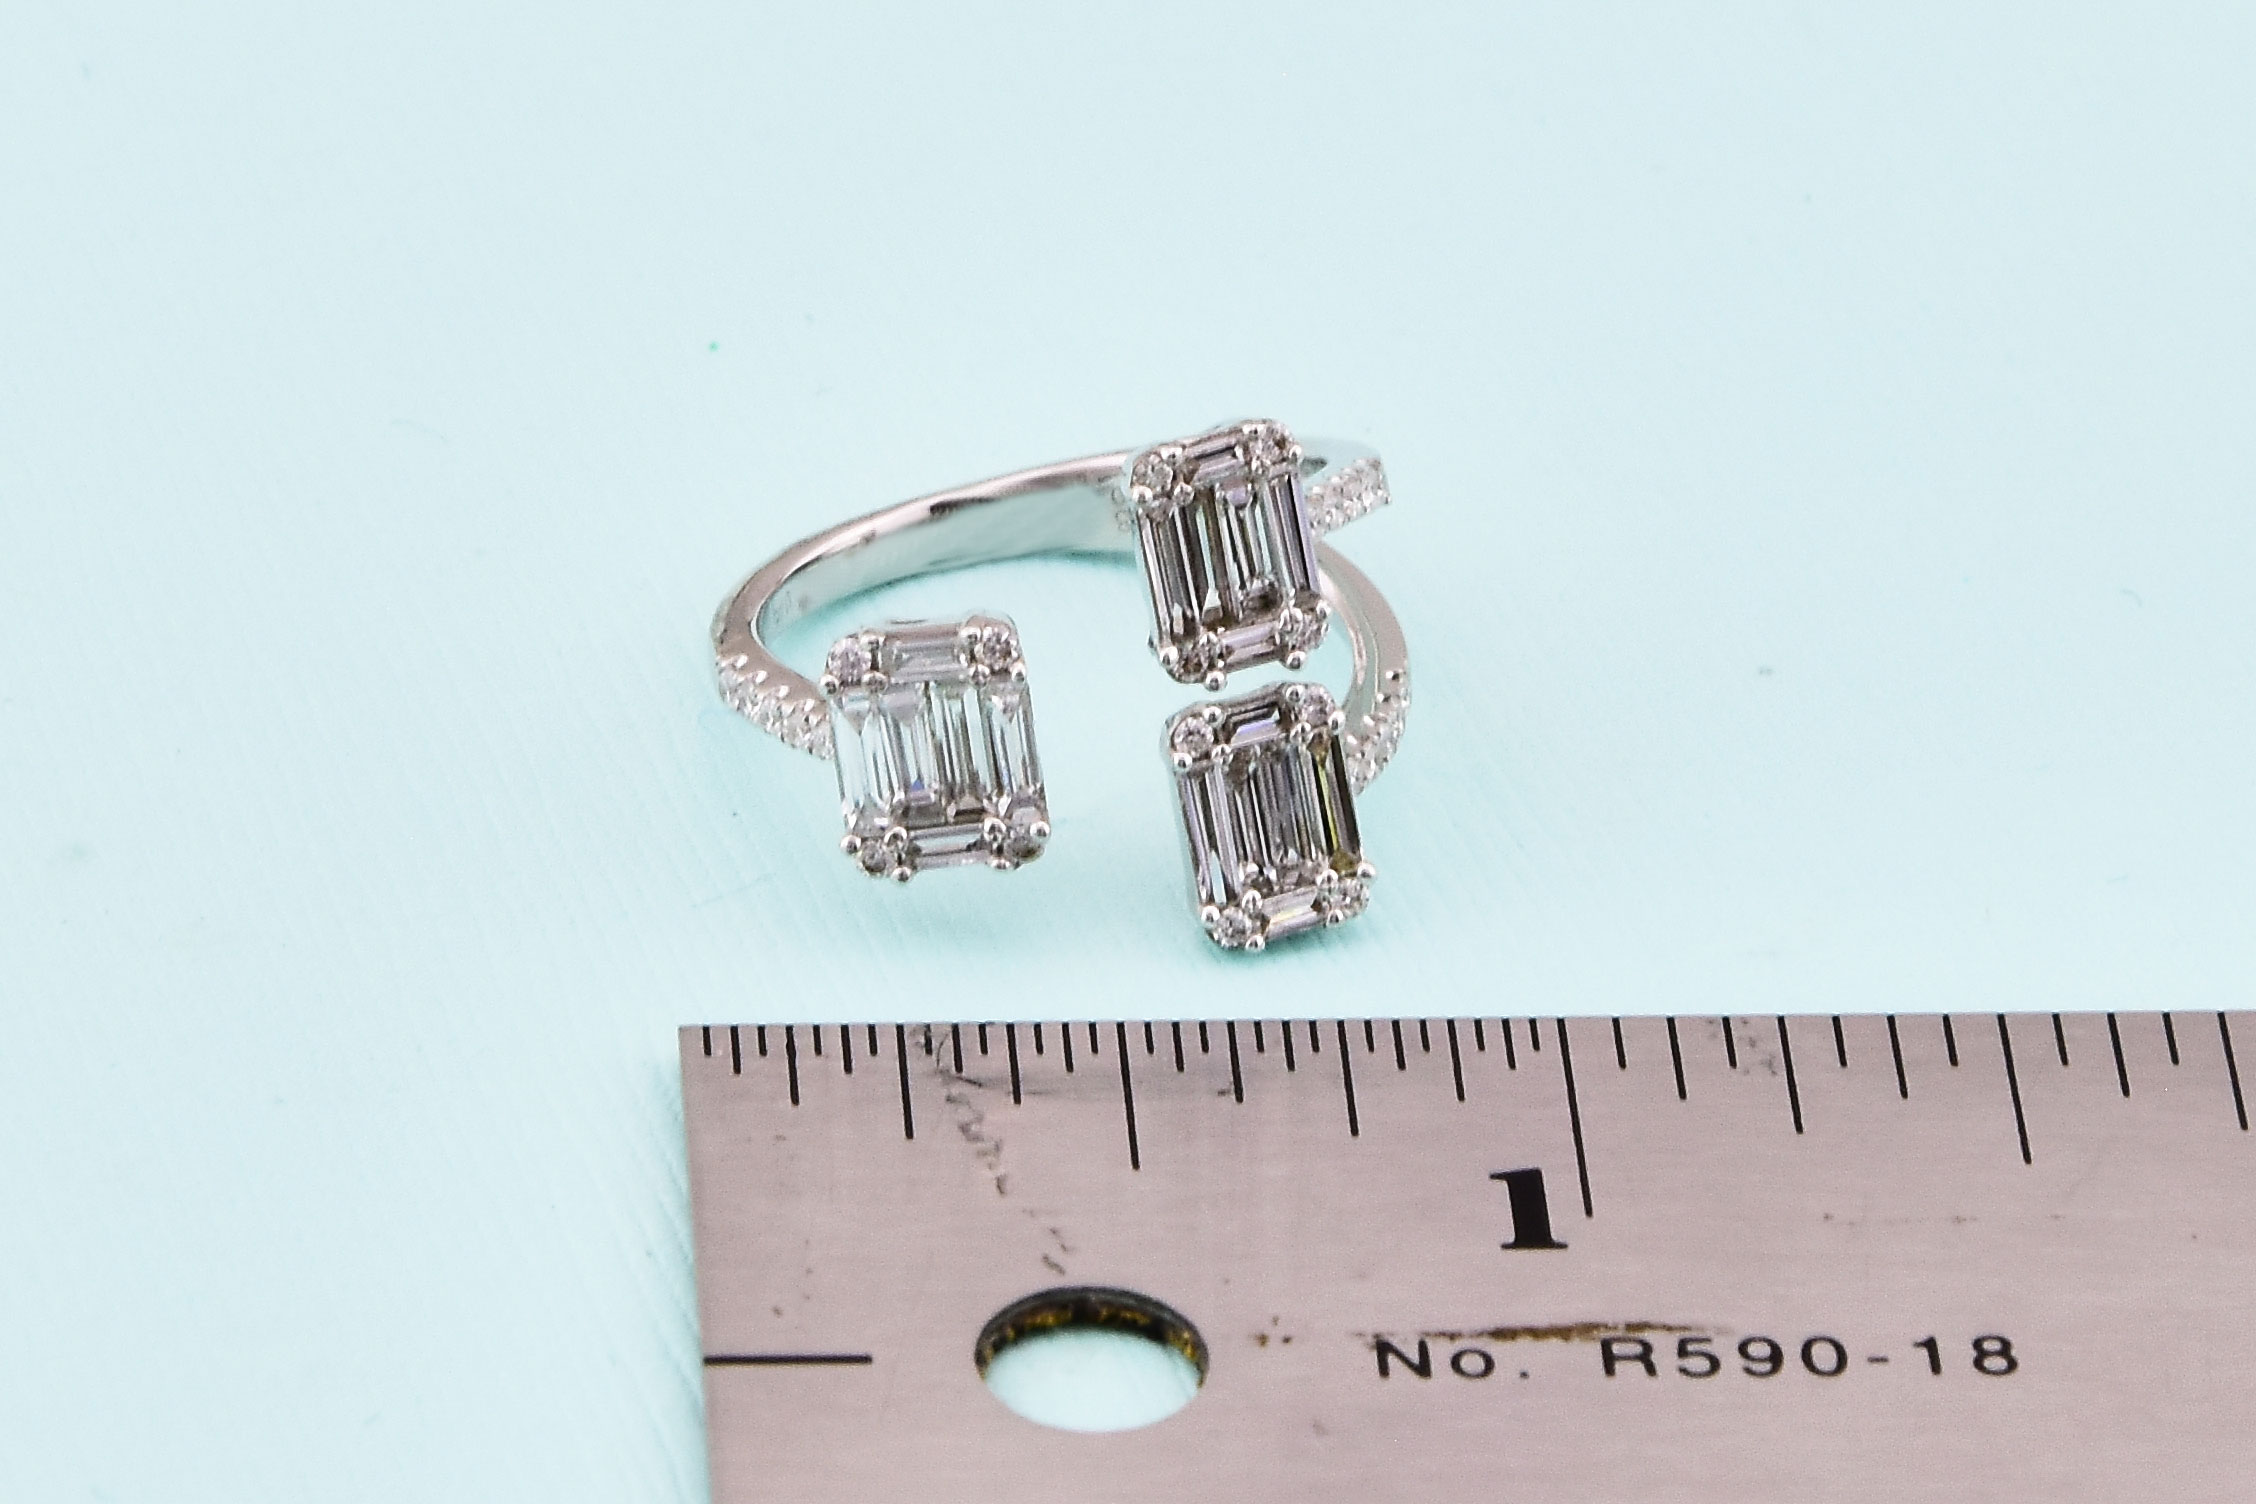 1 Carat Total Weigh Diamond Cocktail Ring